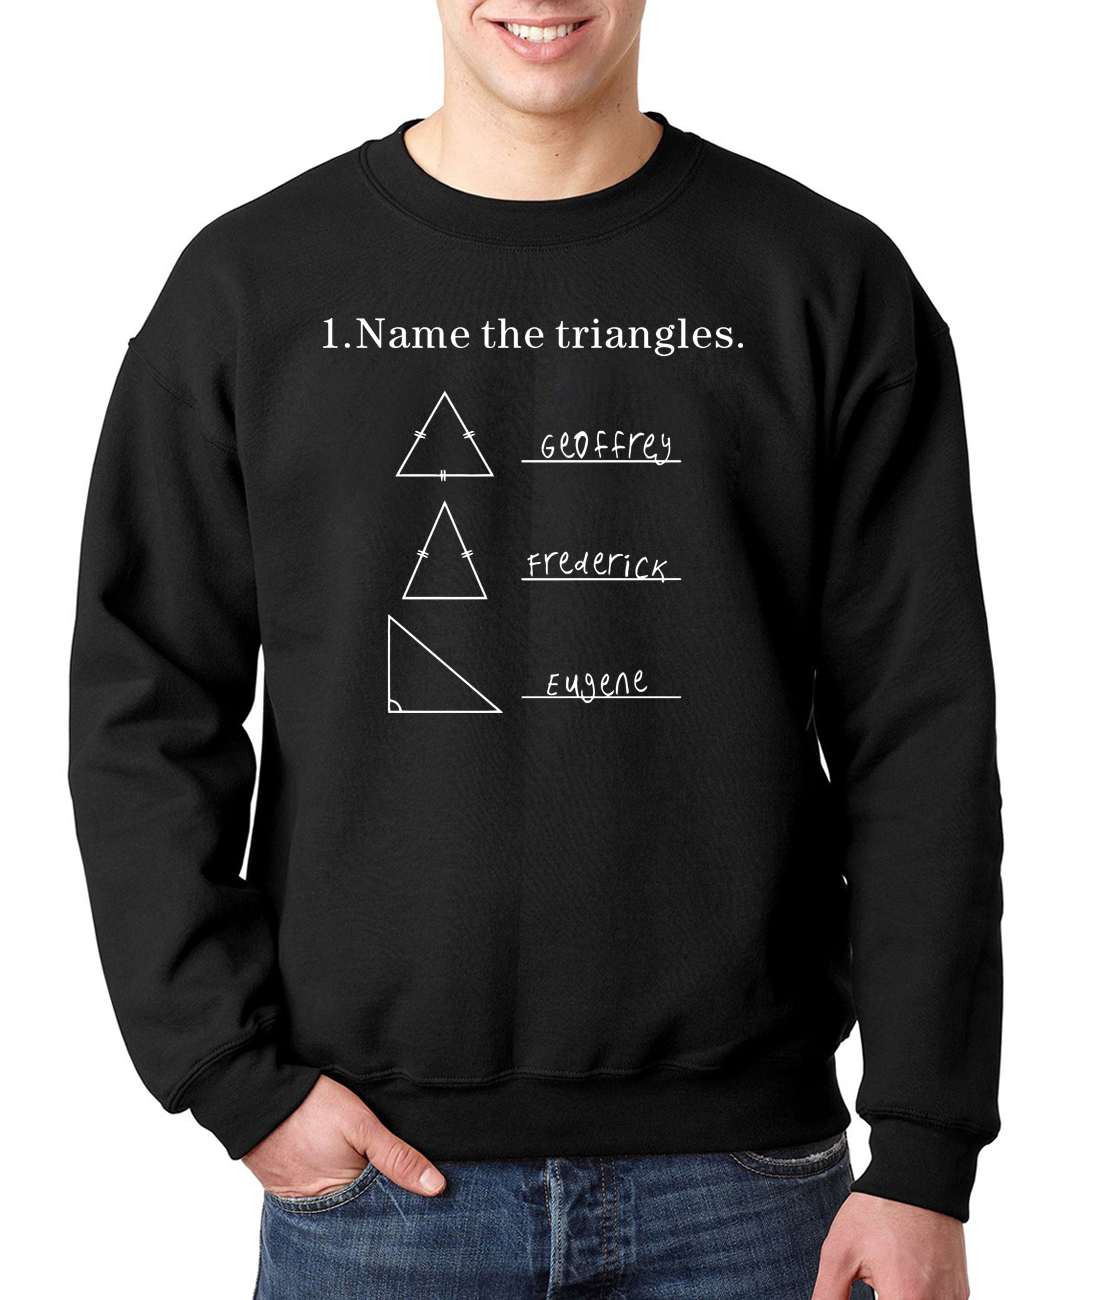 Hoodies Sweatshirt Spring Math Harajuku Hip-Hop Fleece Brand-Clothing Autumn The Geometry